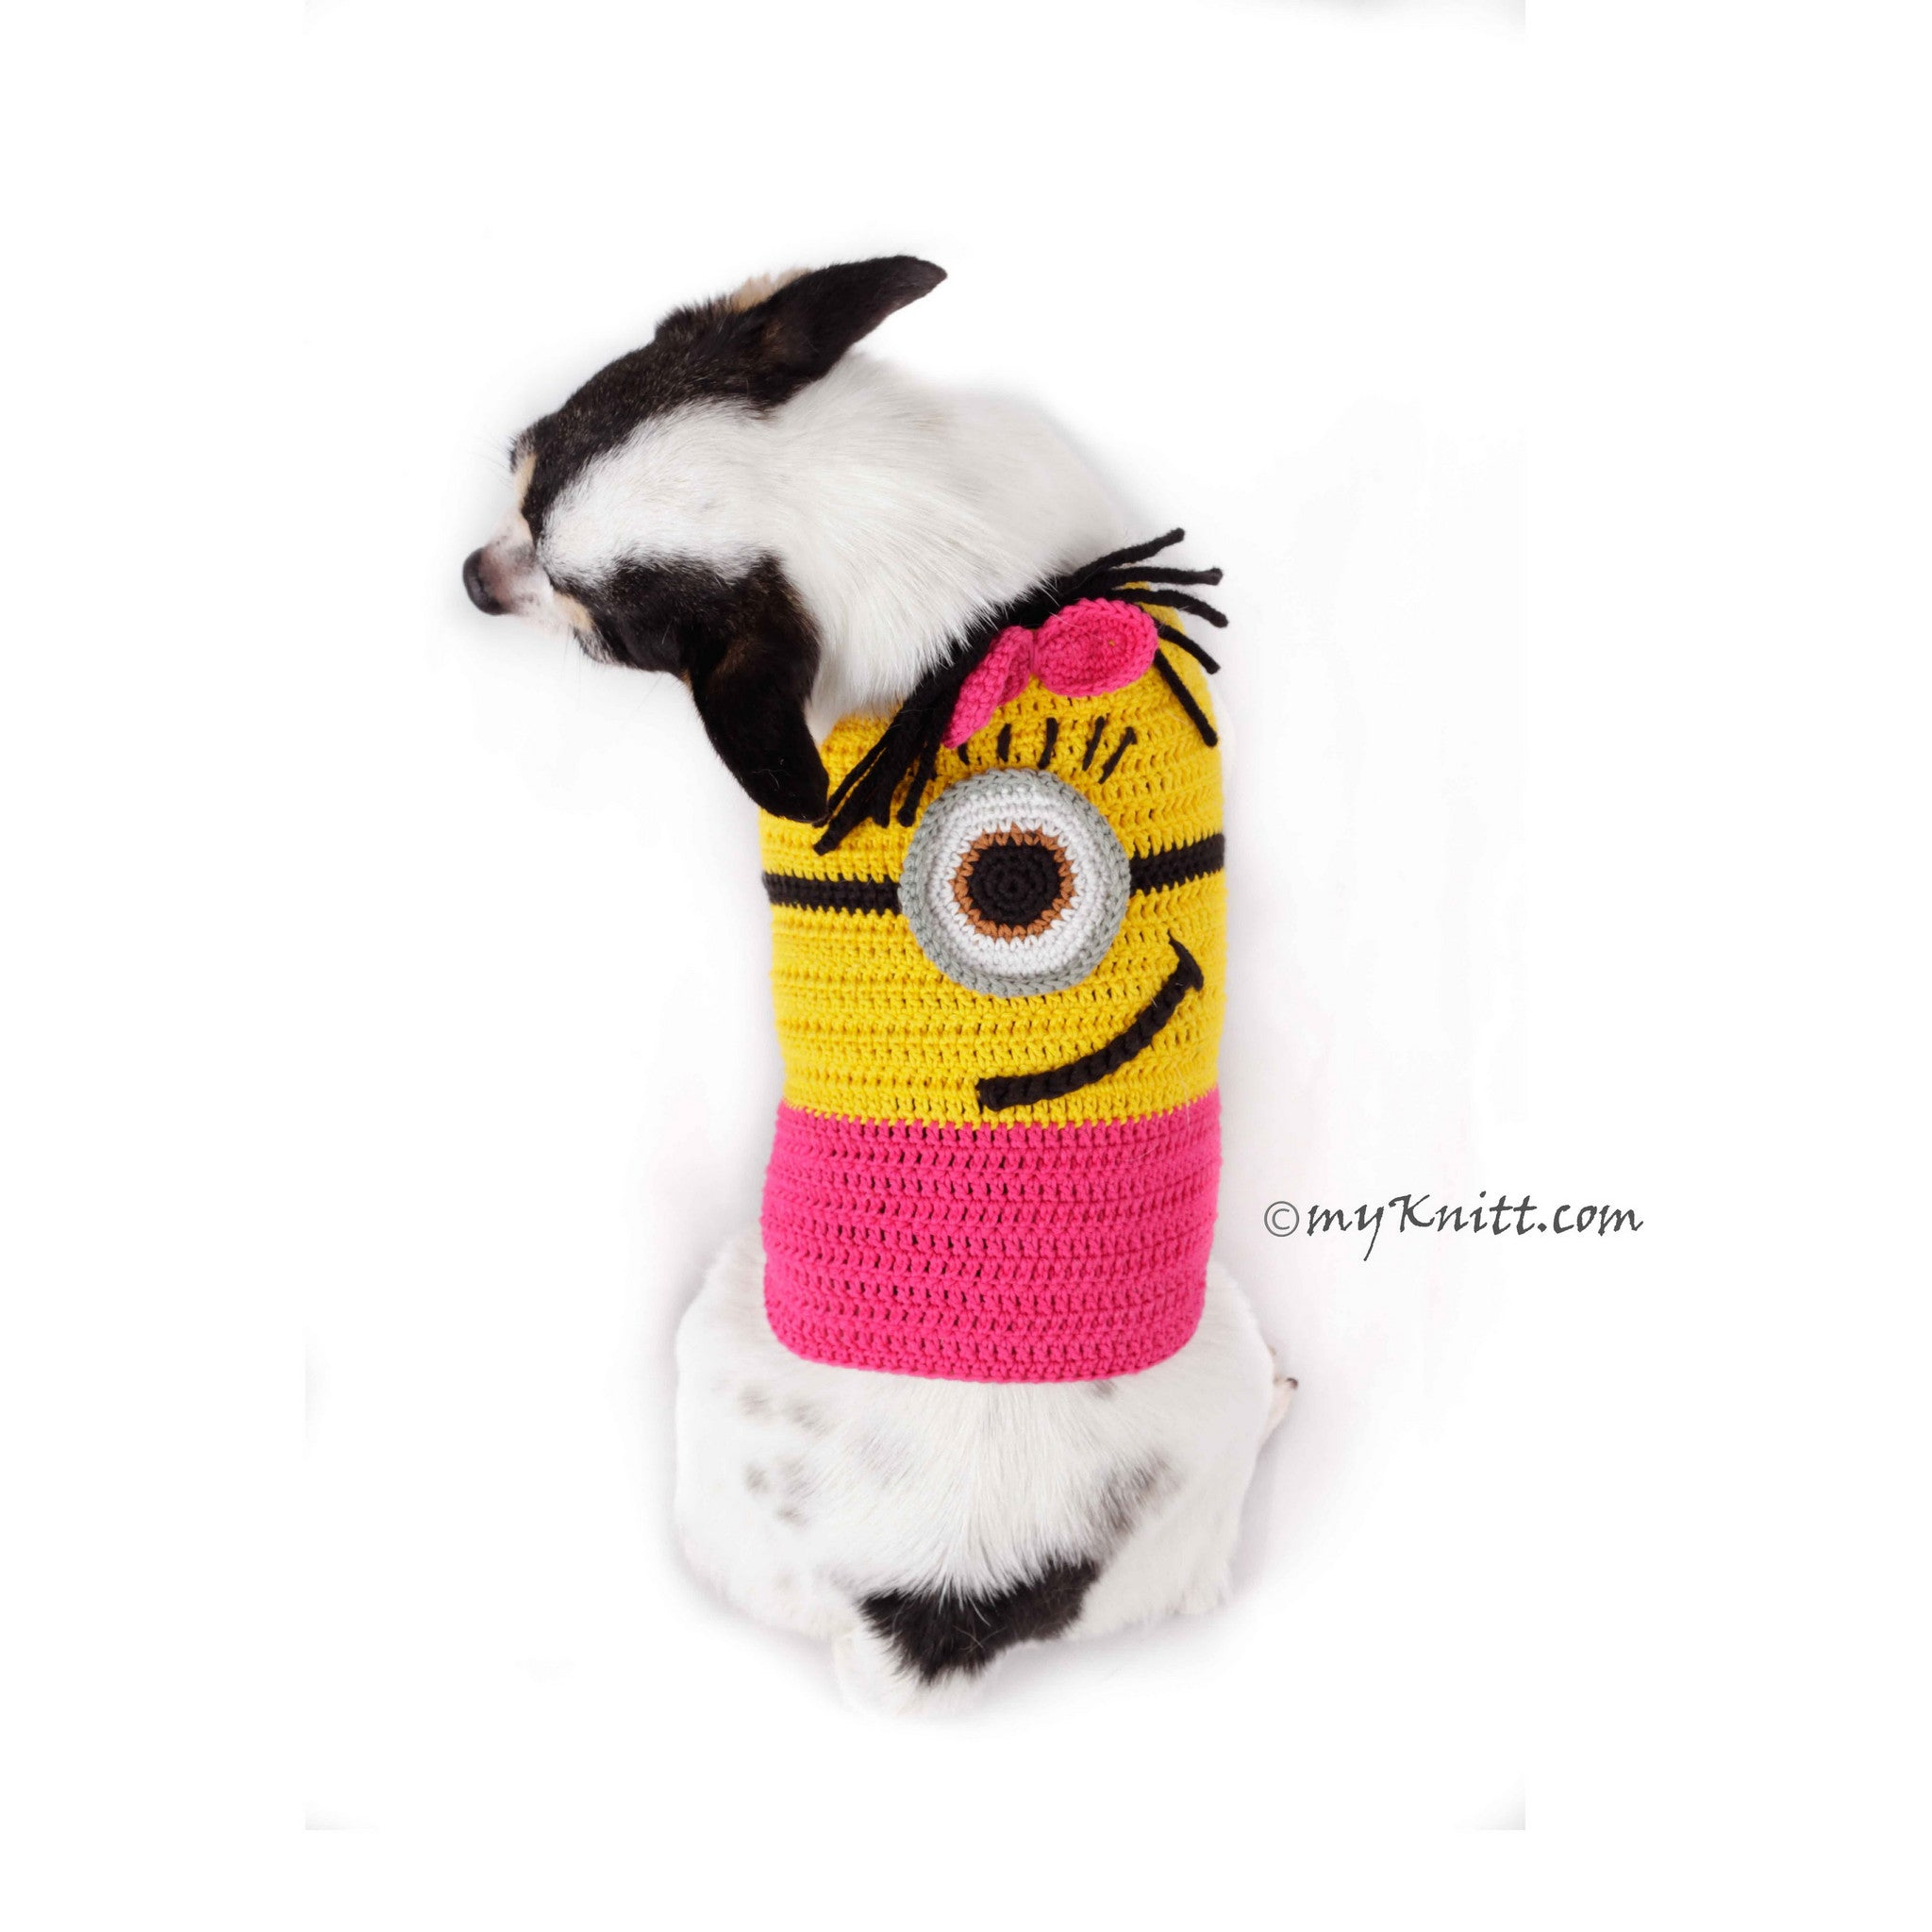 Pink Minion Dog Costume Cute Girl Despicable Me Pet Clothes for Halloween DK783 by Myknitt